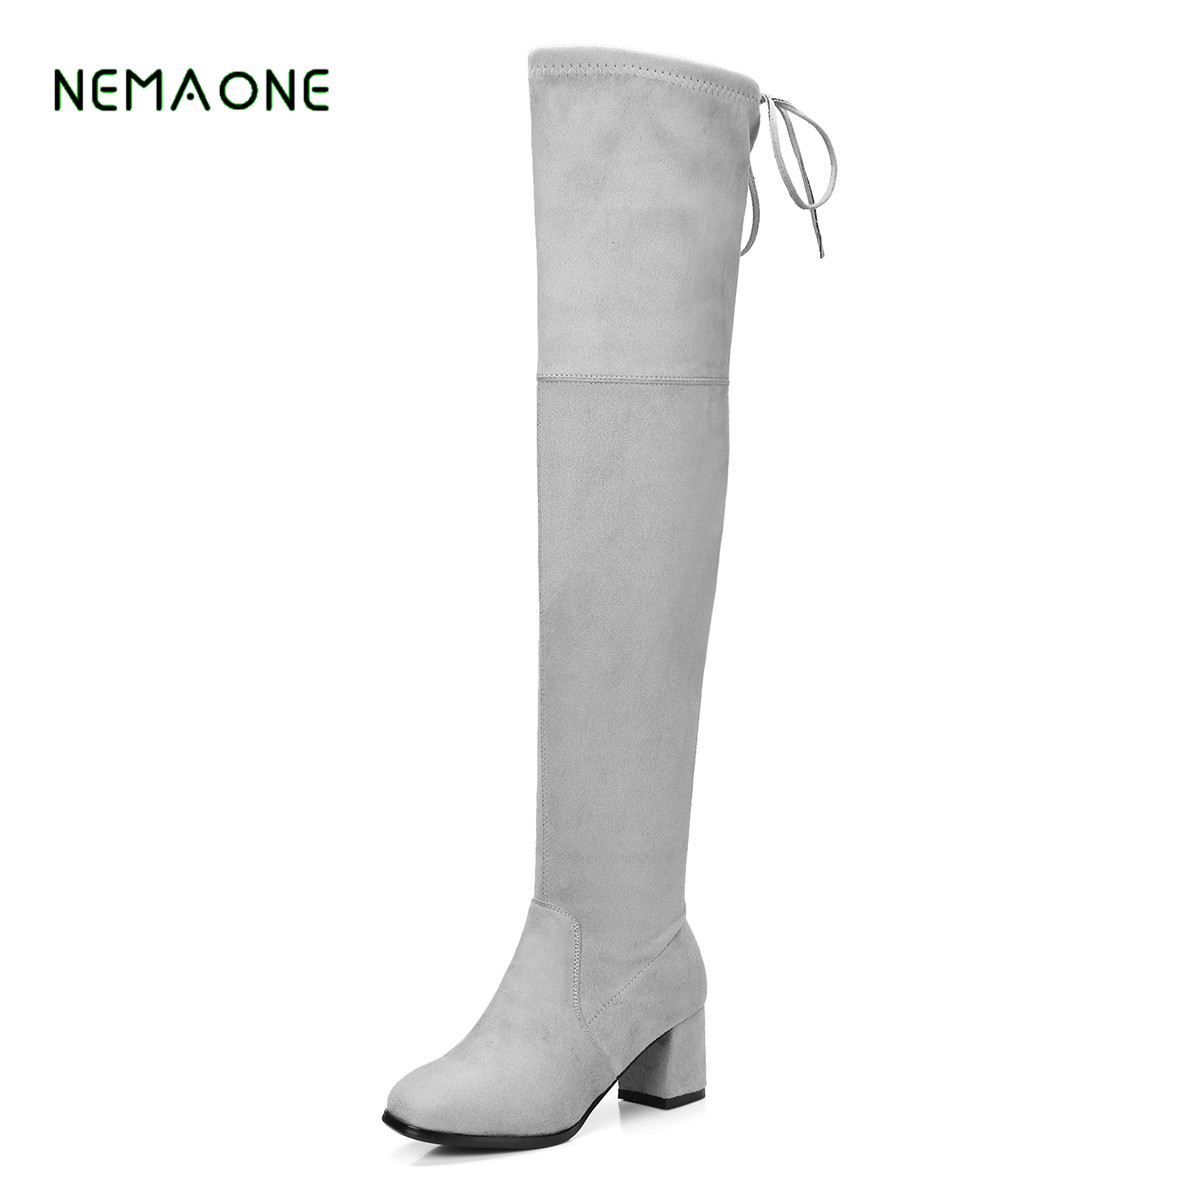 NEMAONE 2017 new Square Heel Platform Over The Knee Boots Fashion Buckle Dress Woman Winter Boots Round Toe Boots gray ...